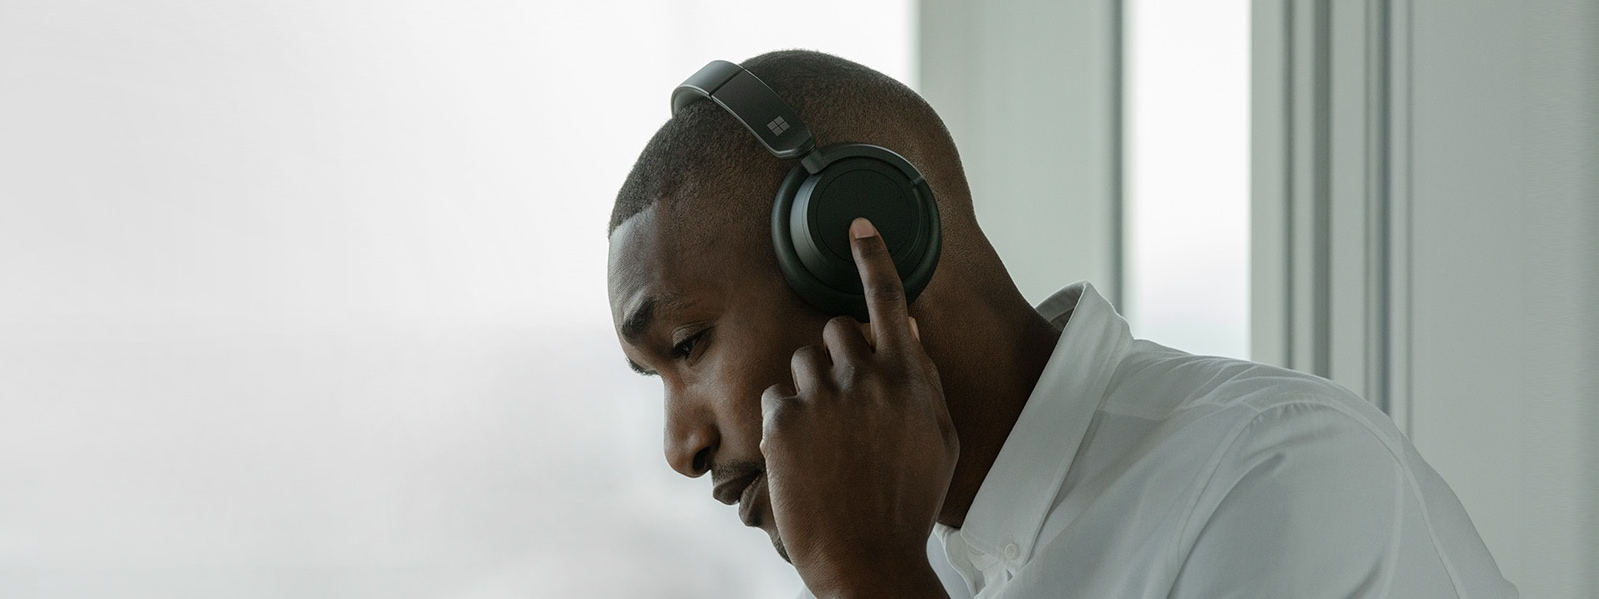 A man wears the black Headphones 2 while touching the left dial